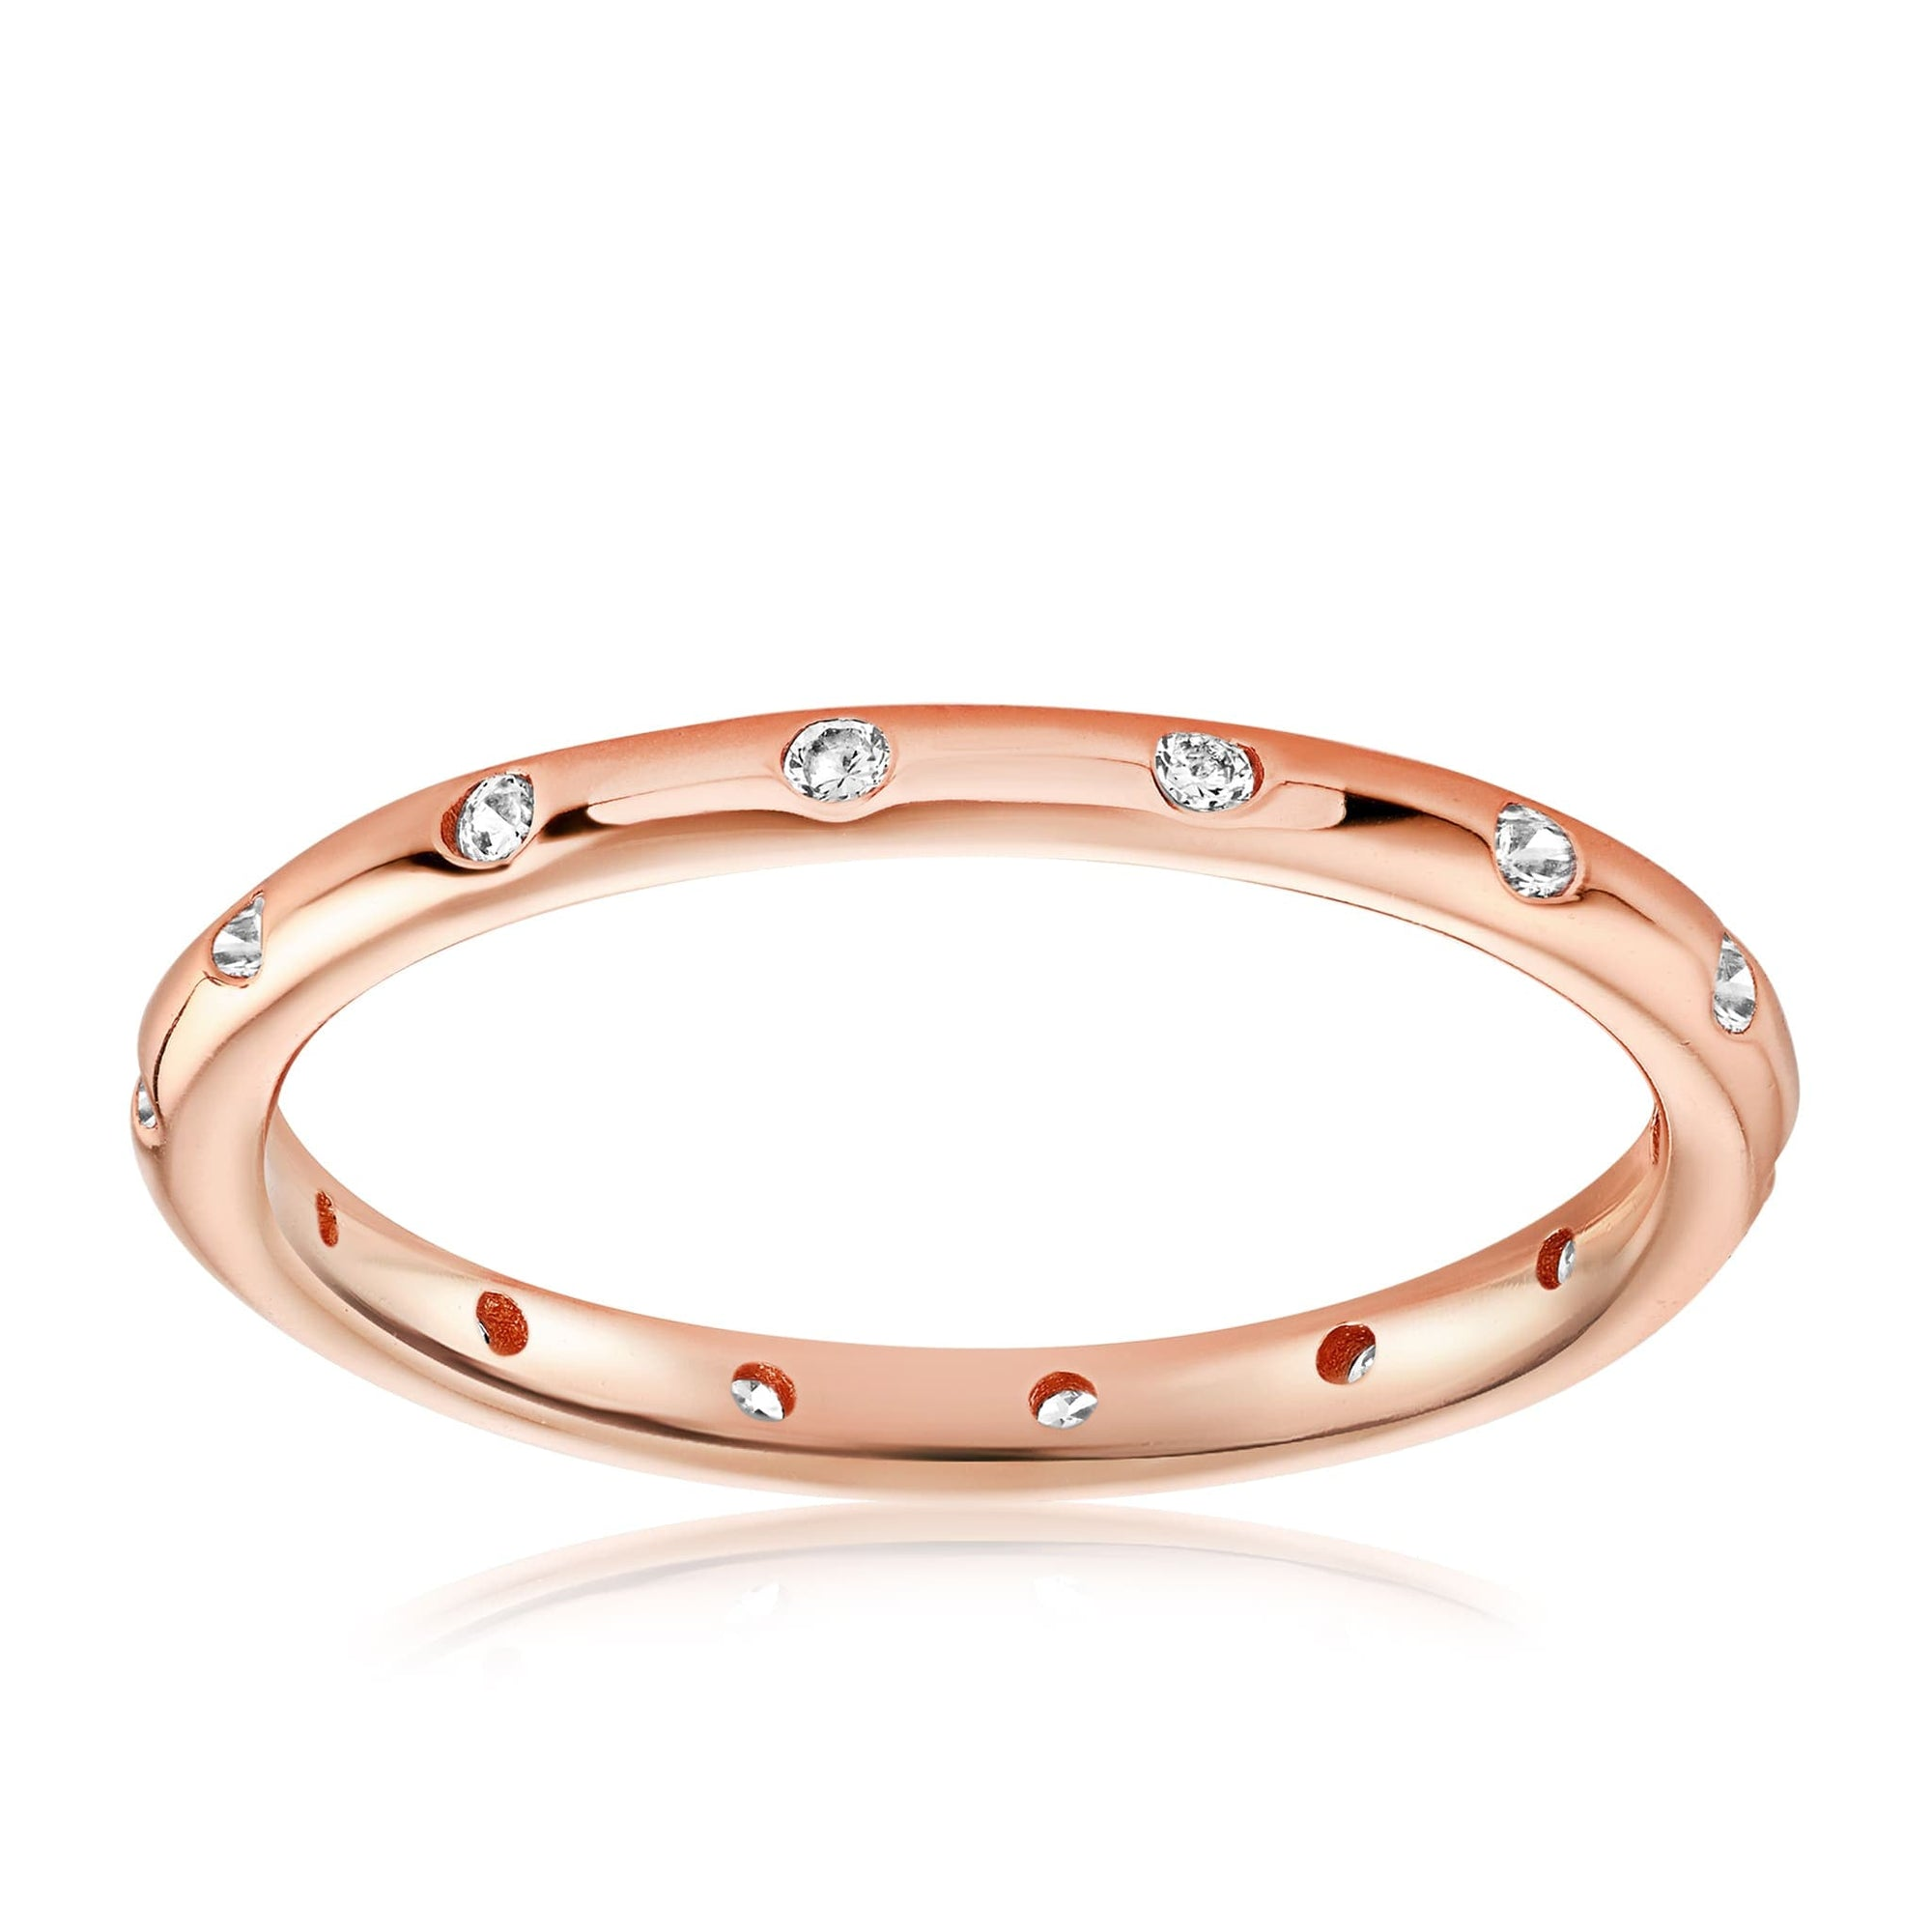 Droplet Ring - Front View Facing Up - 18K Rose Gold Vermeil